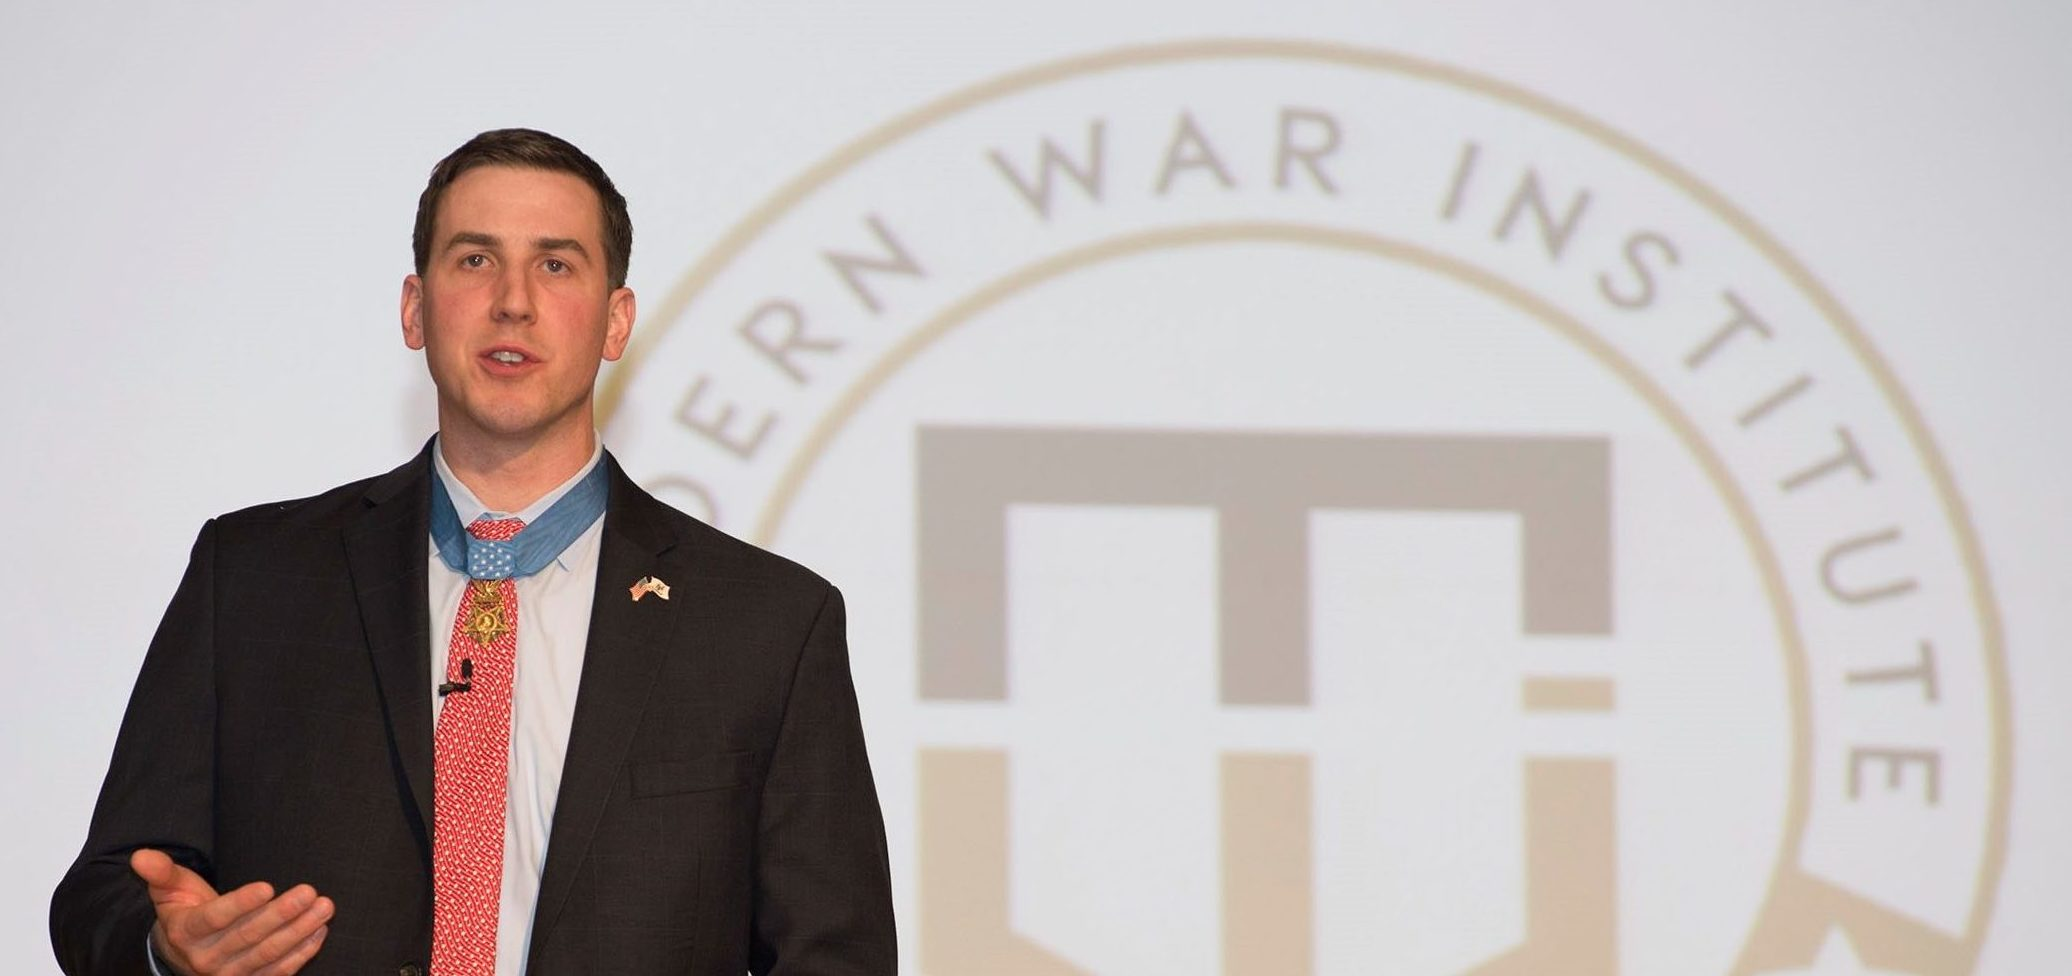 Medal of Honor Recipient Recalls Harrowing Firefight in Wanat, Afghanistan